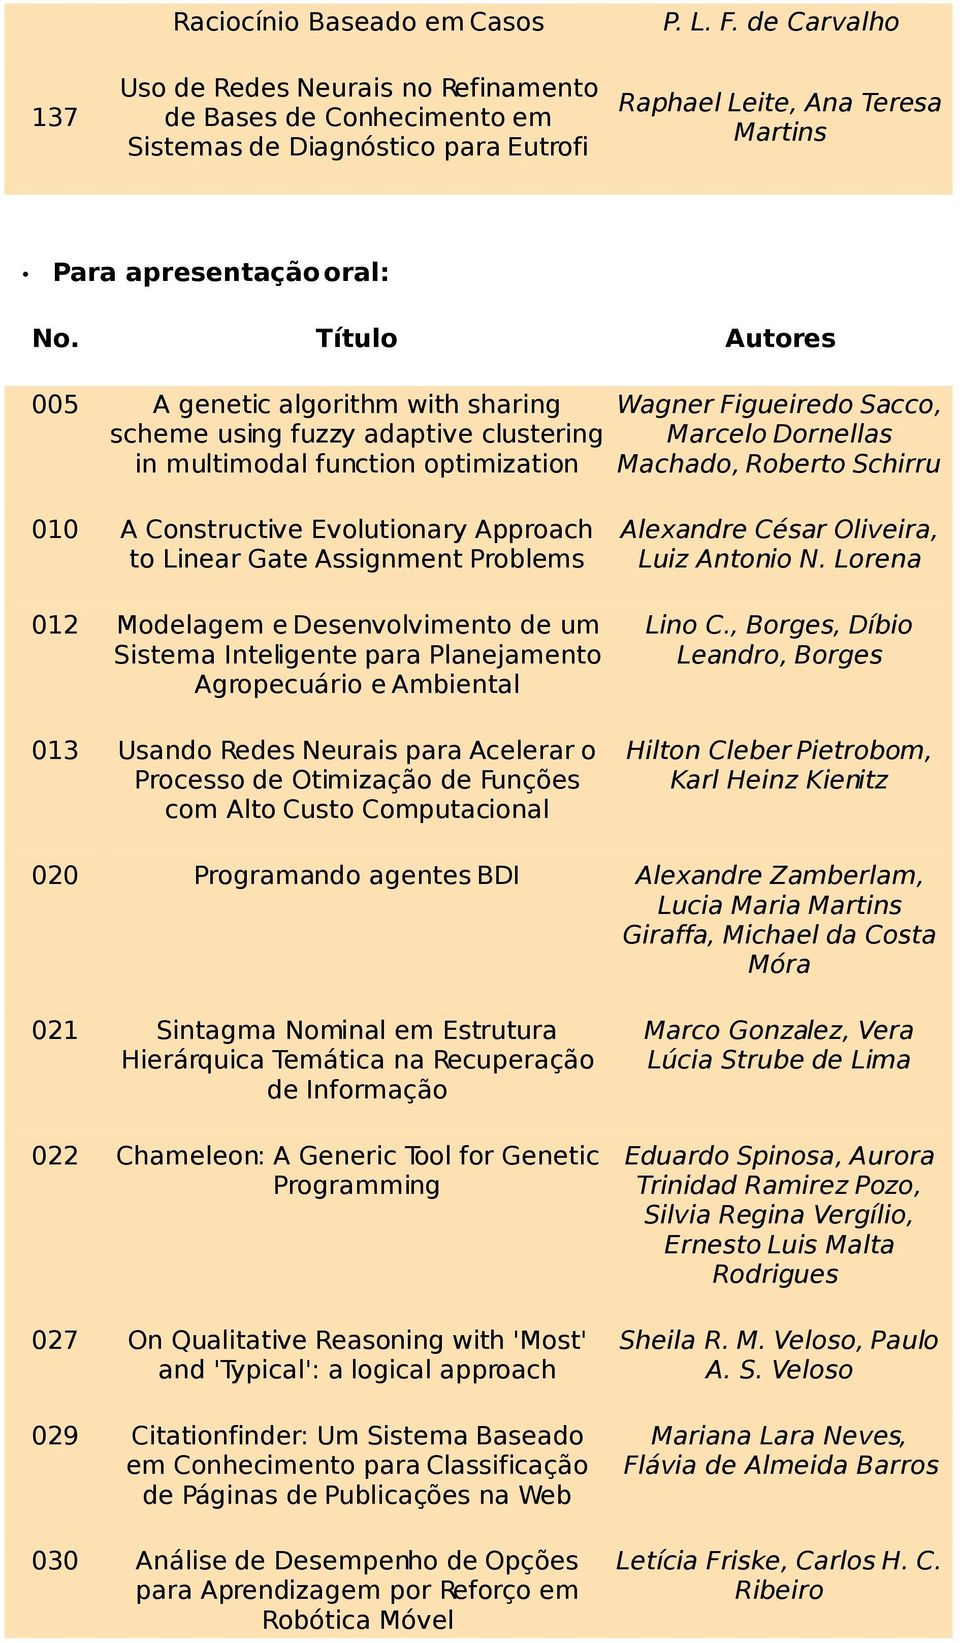 Título Autores 005 A genetic algorithm with sharing scheme using fuzzy adaptive clustering in multimodal function optimization Wagner Figueiredo Sacco, Marcelo Dornellas Machado, Roberto Schirru 010